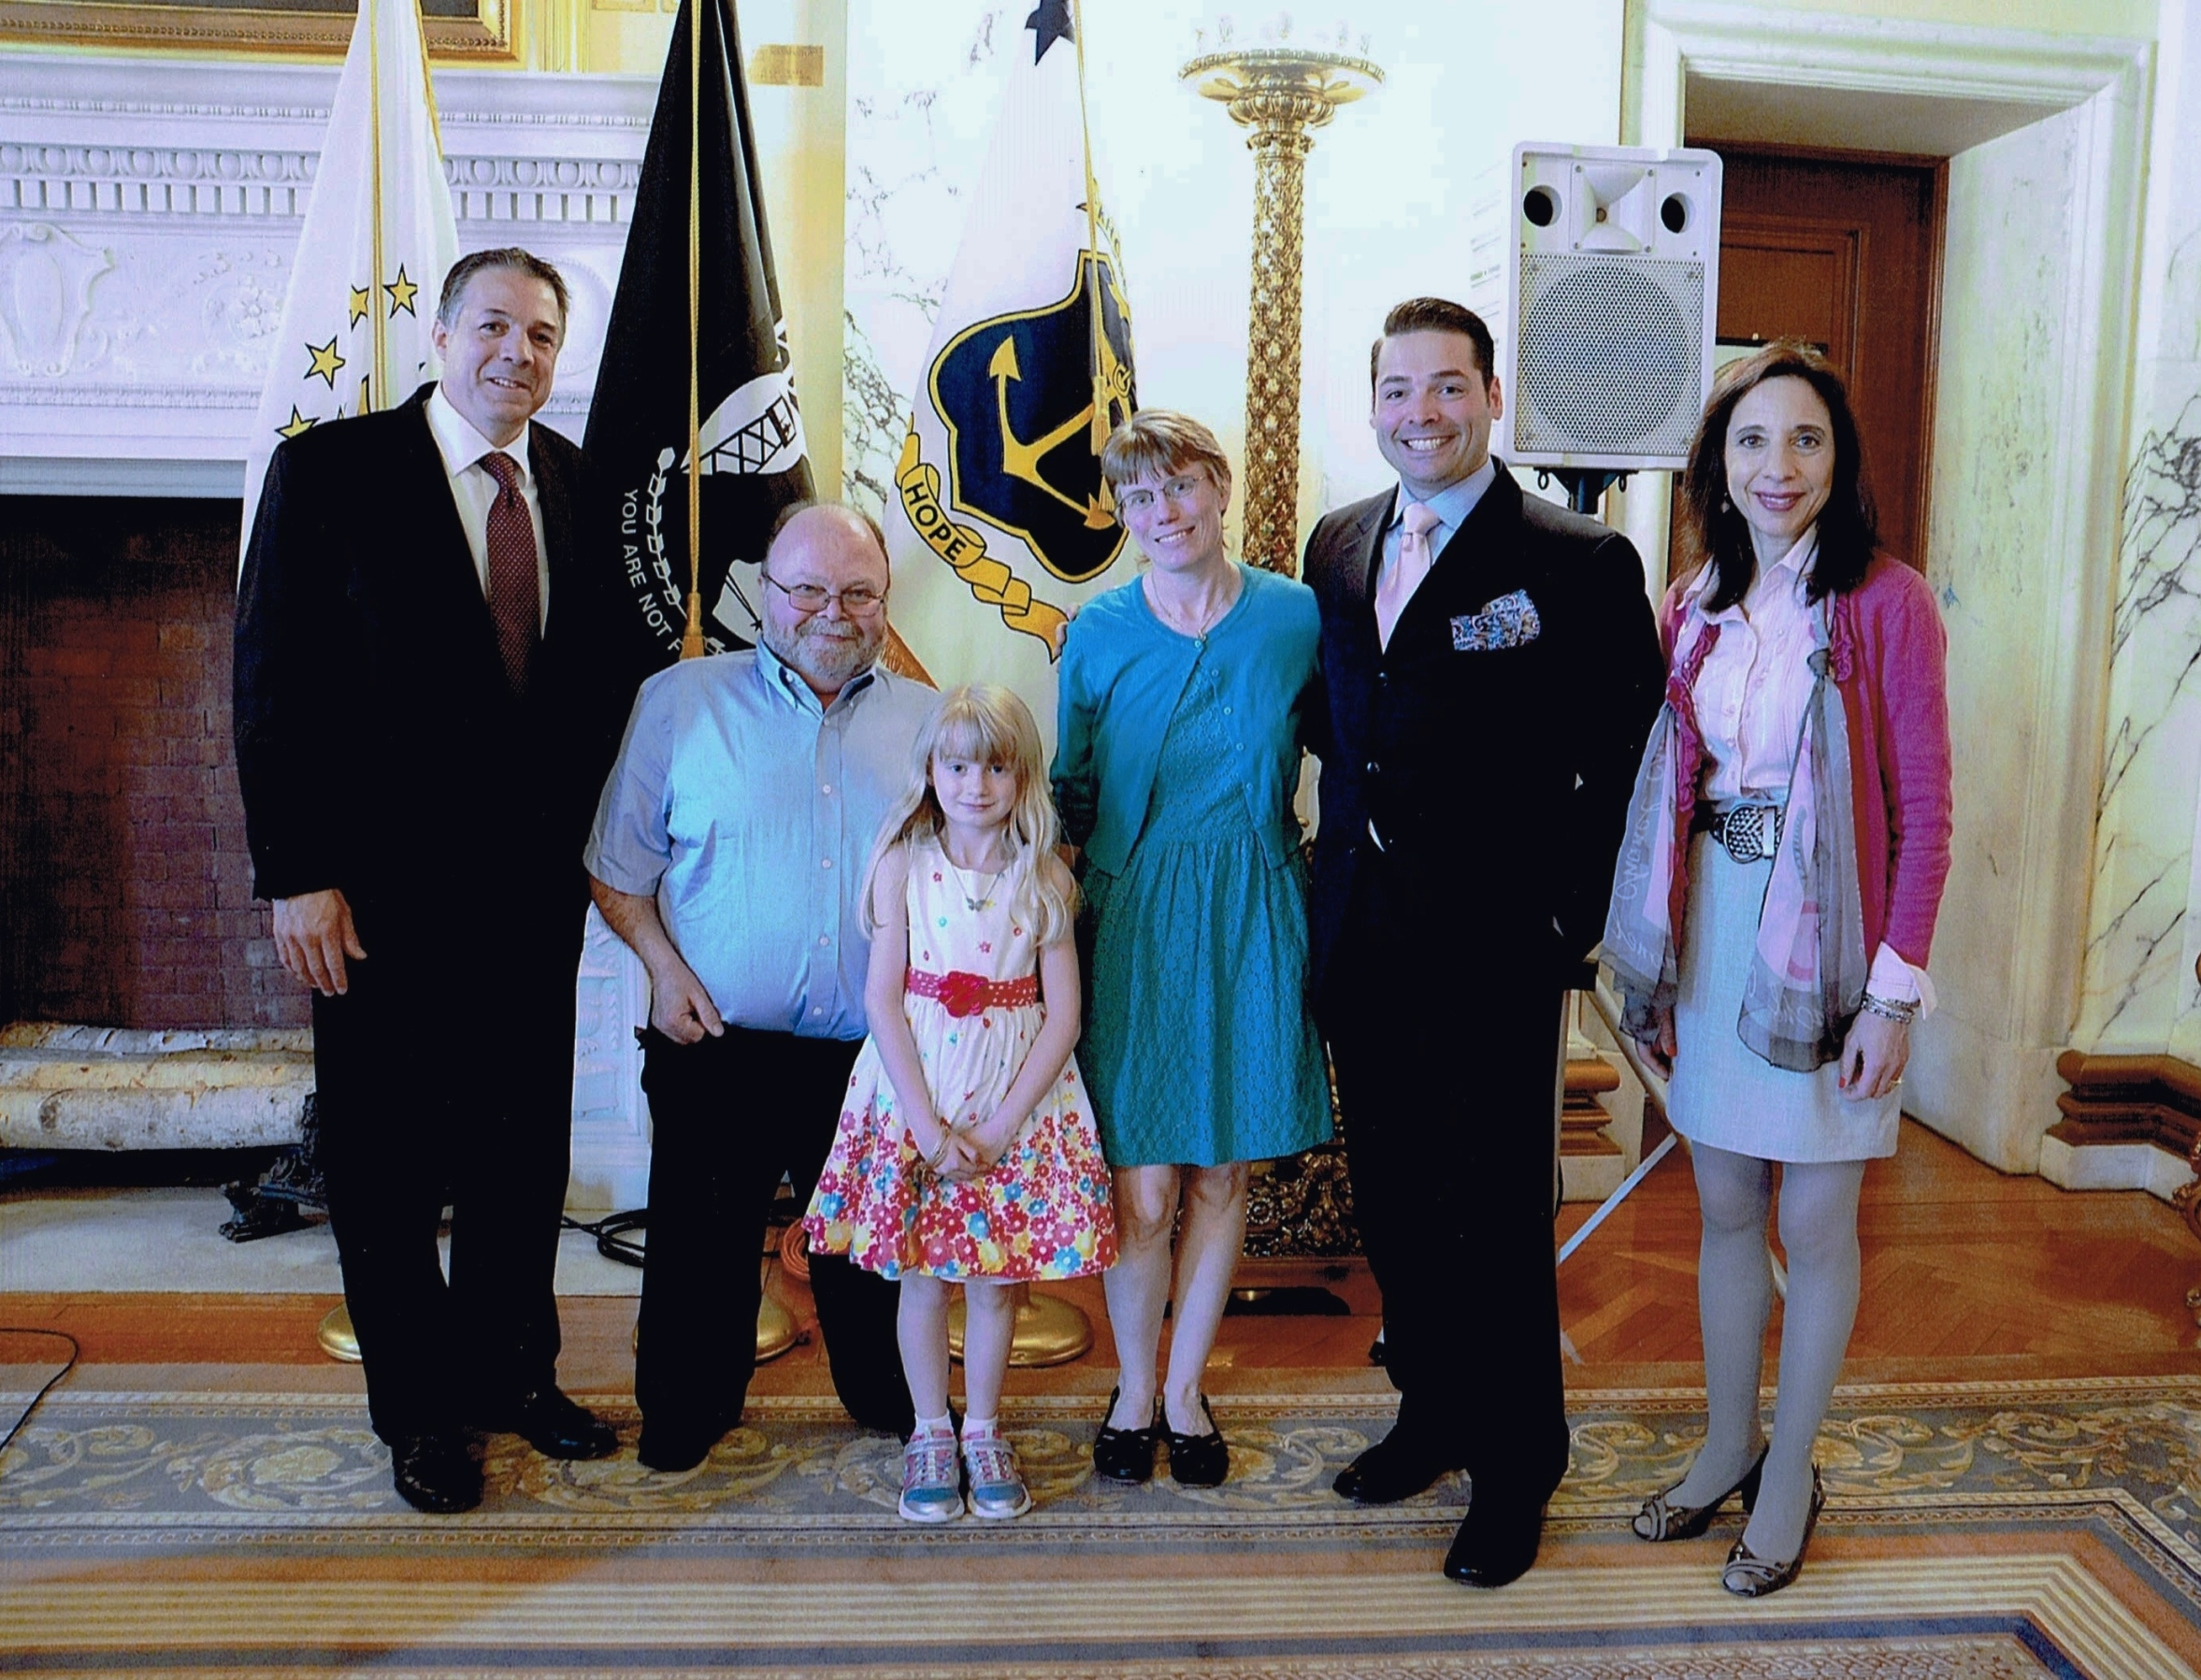 Alexander Barrington Parents Senatorraptakis Finchfamily Repnardolillo Drraptakis